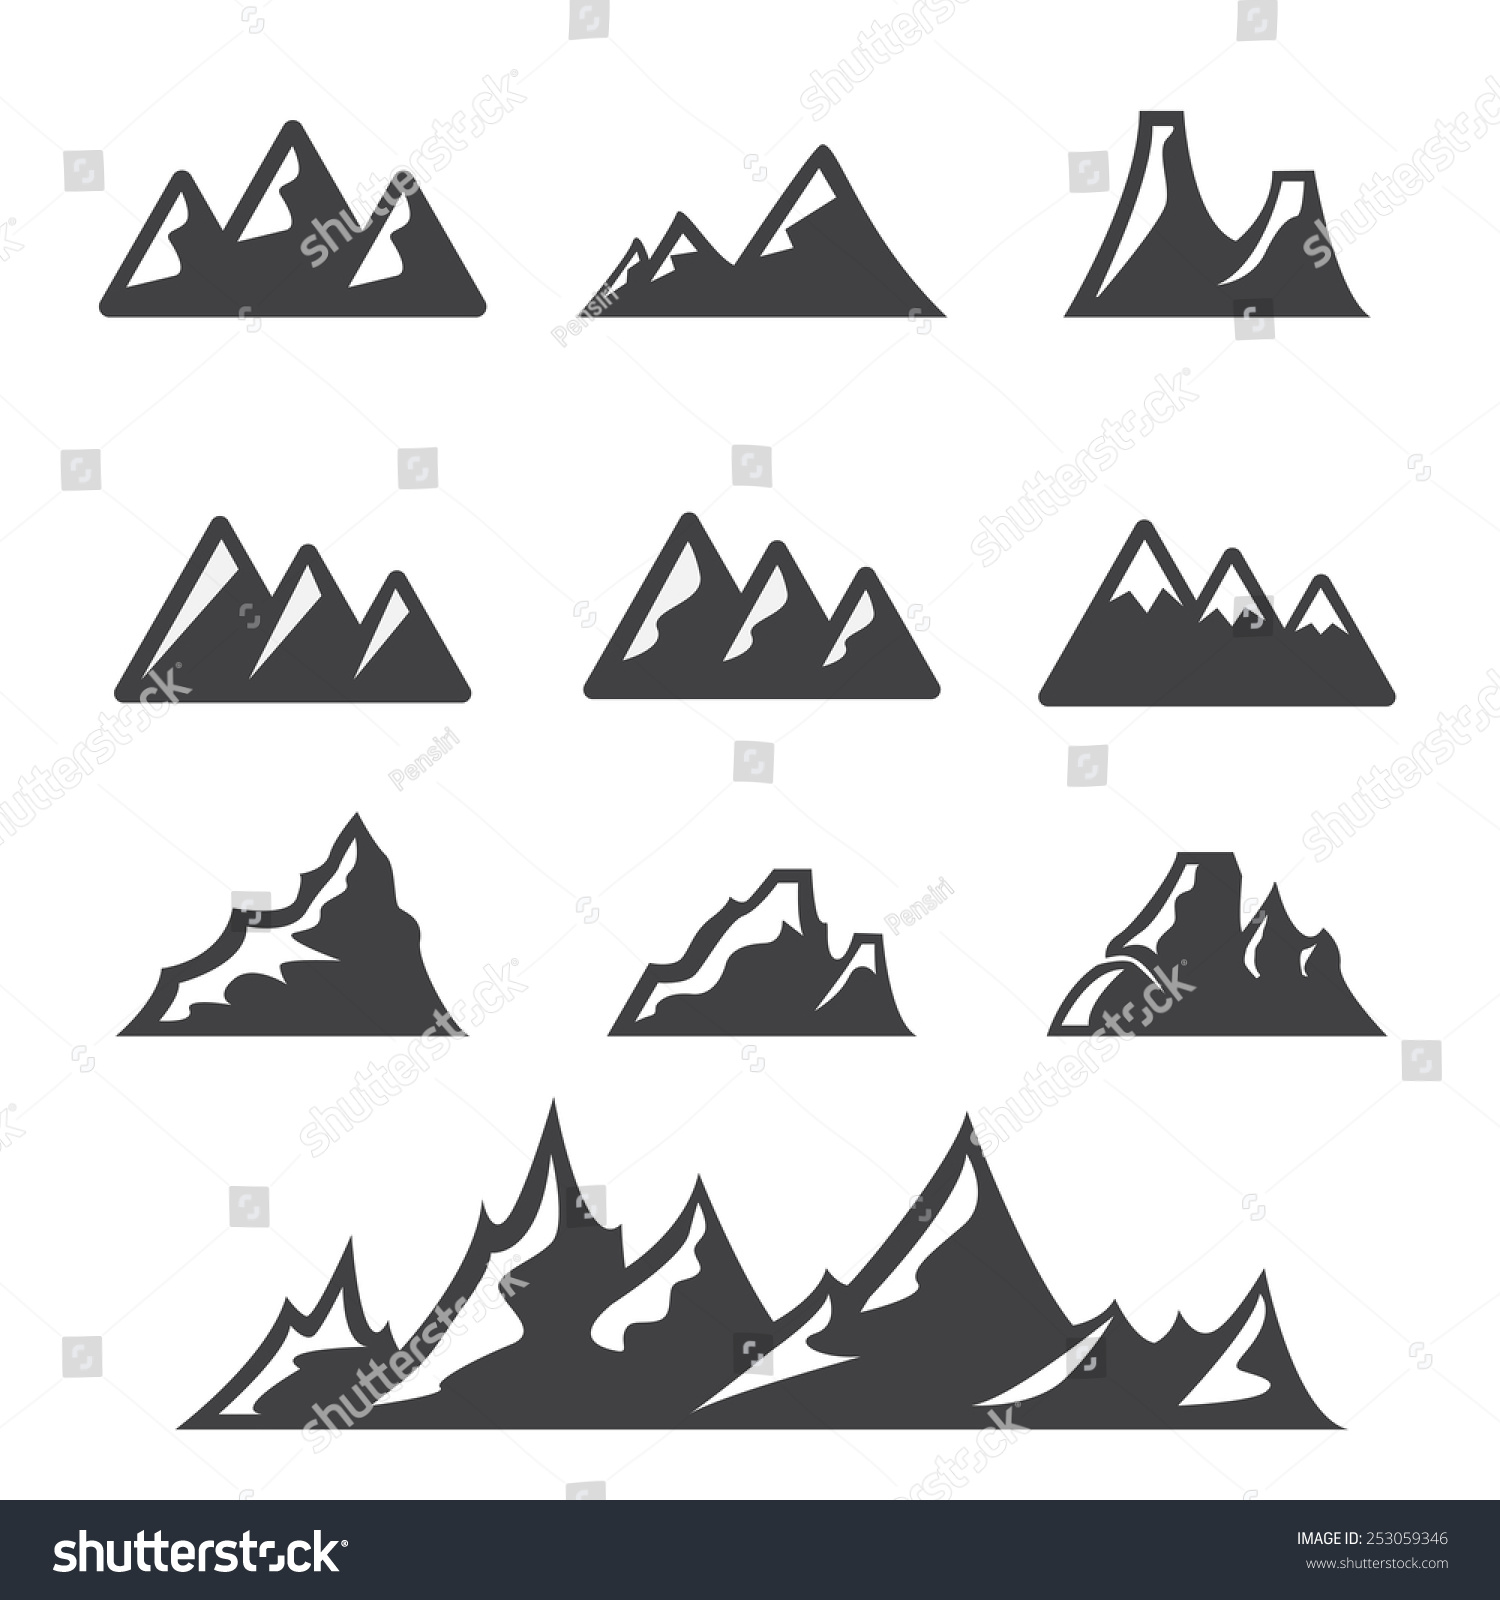 Mountain Icon Stock Vector Illustration 253059346 ...